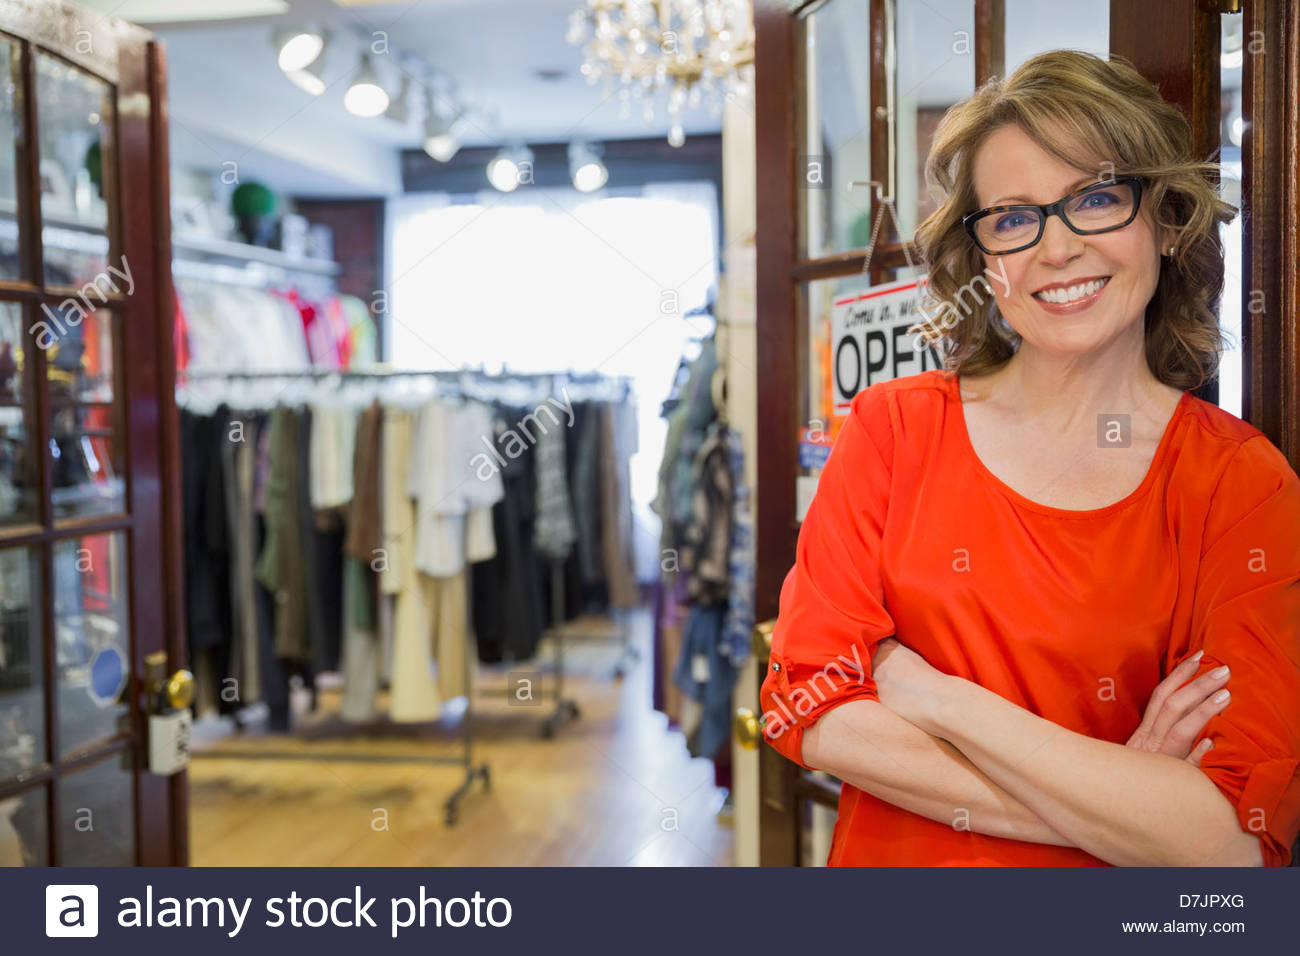 Portrait of female small business owner in store entrance - Stock Image